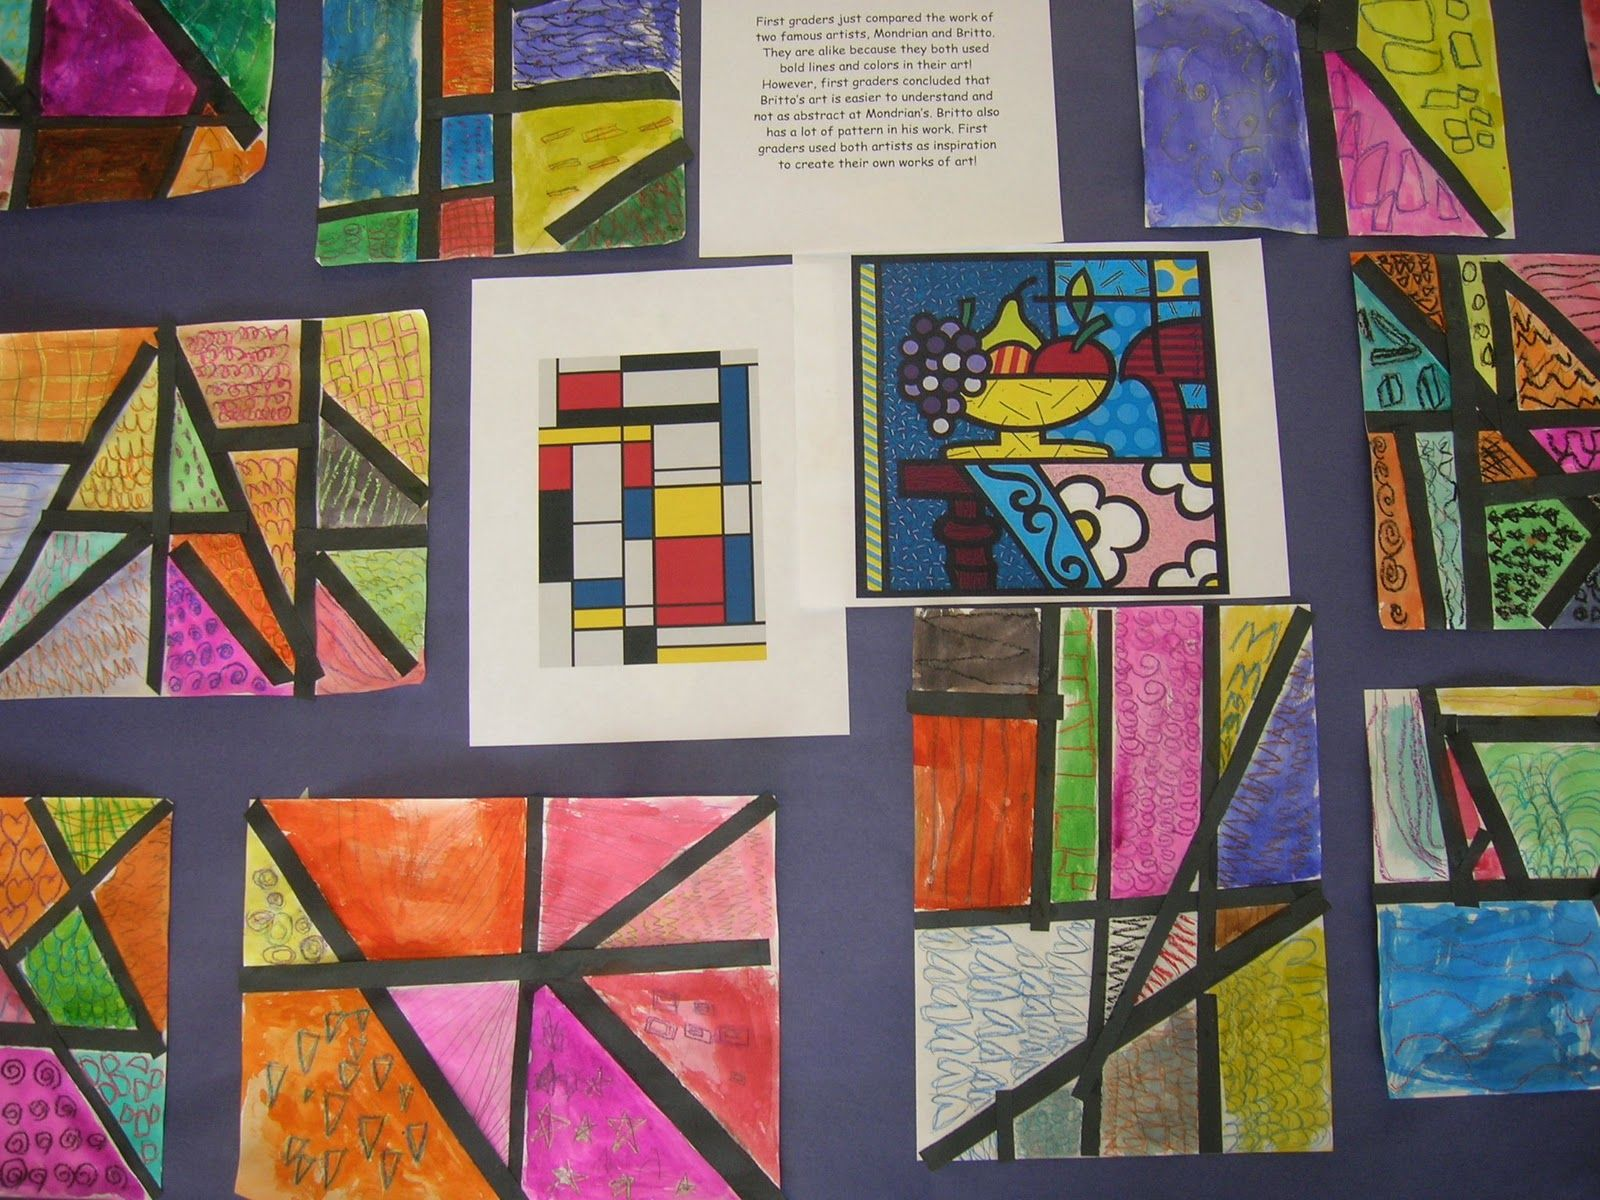 First Graders Compared The Work Of Two Famous Artists Piet Mondrian And Romero Britto They Are